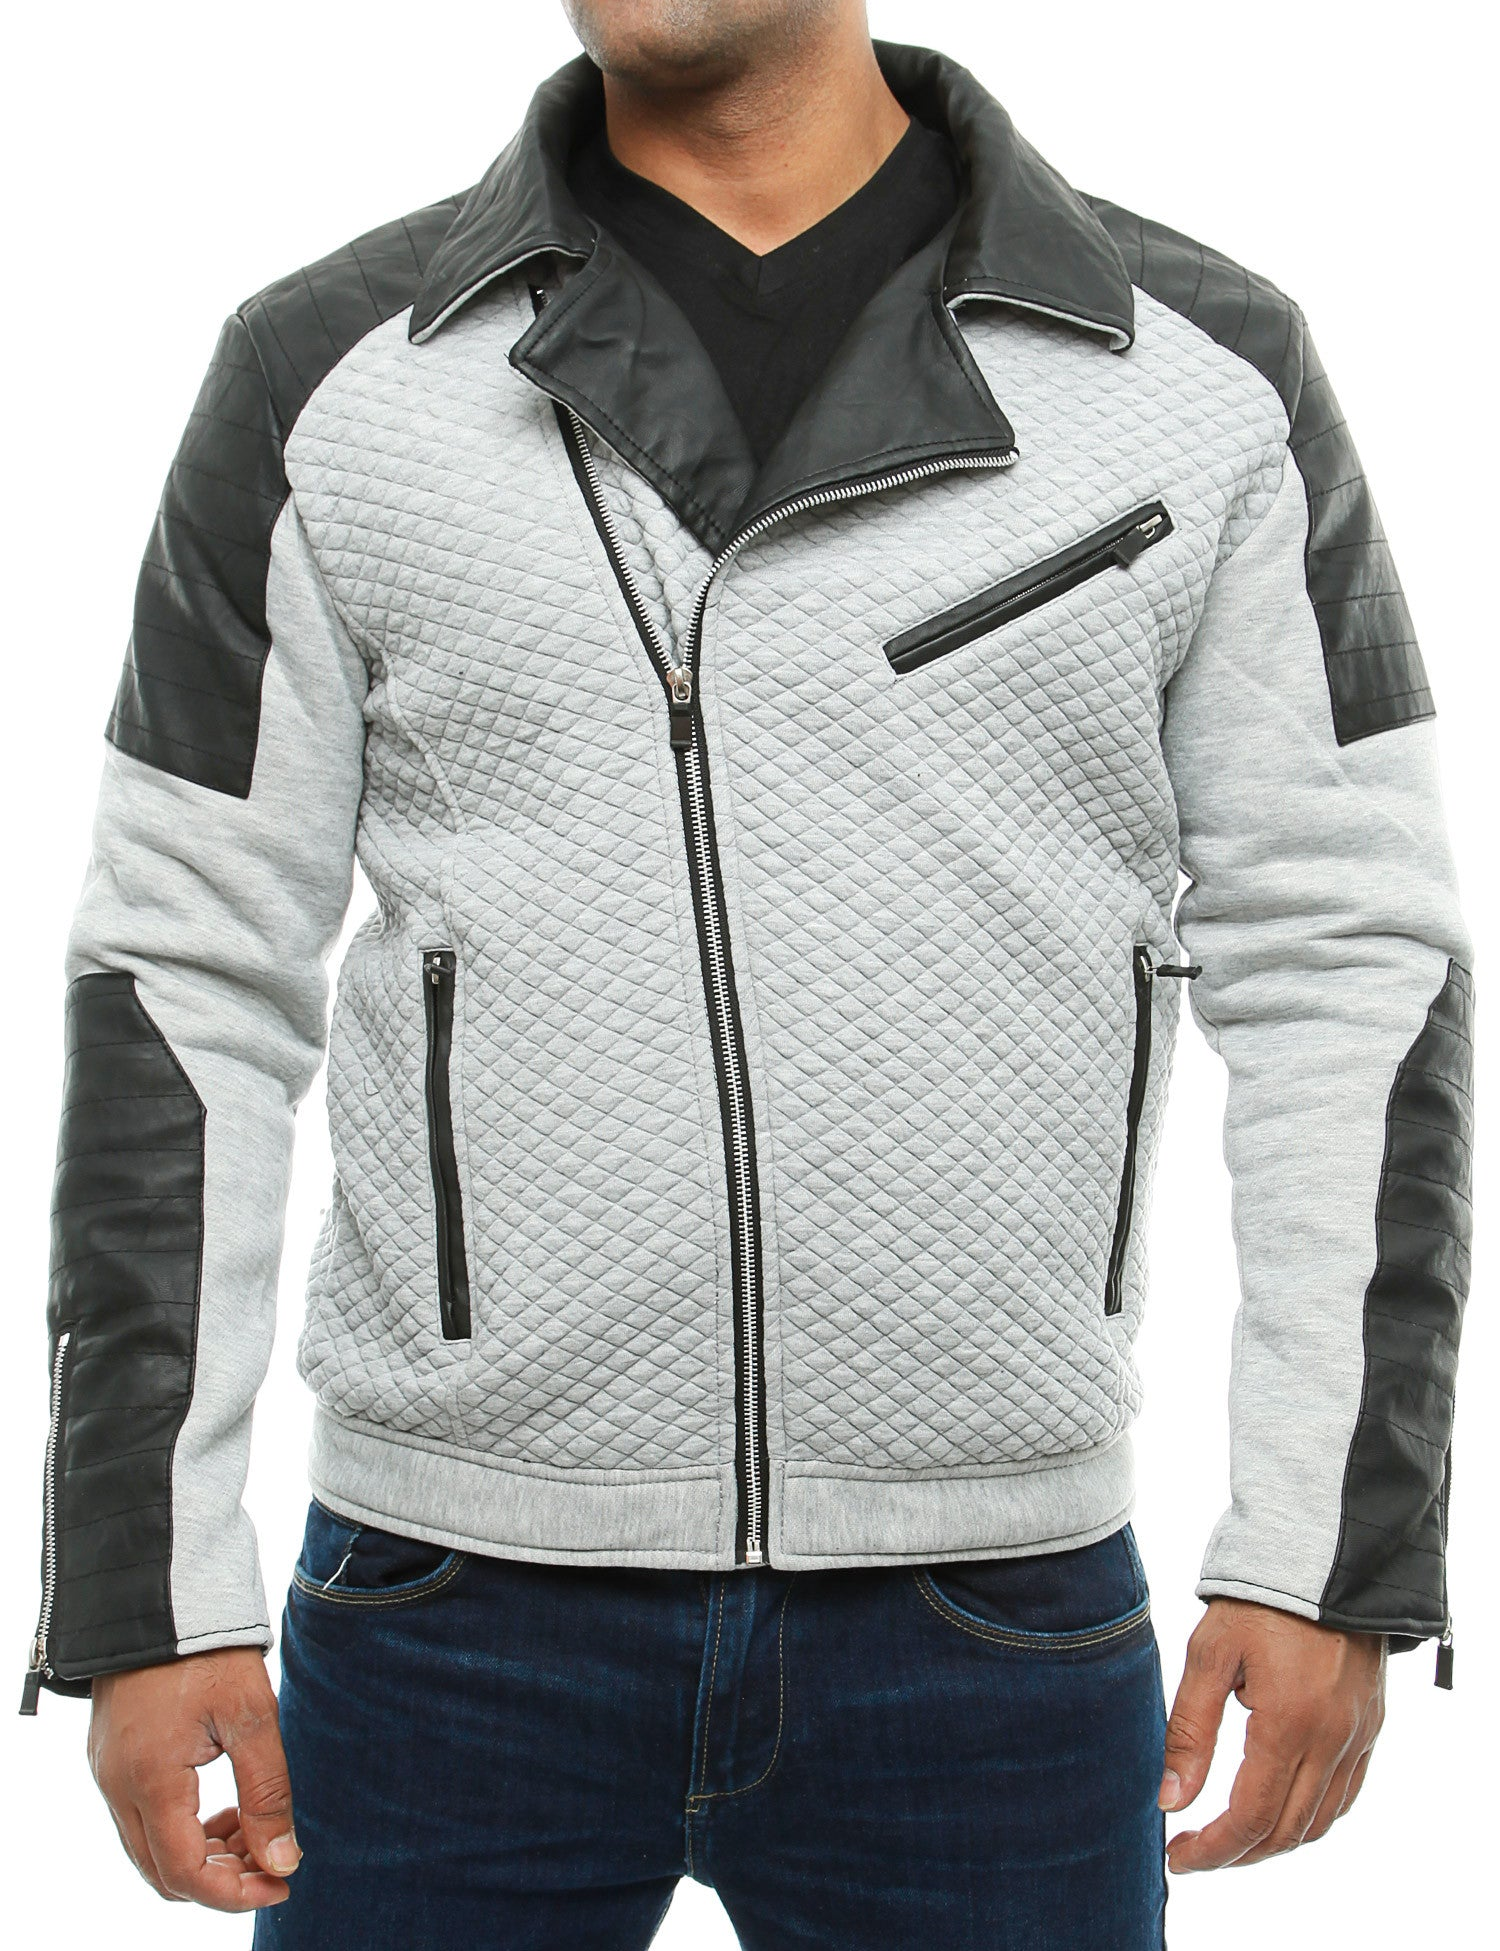 Just Way Jacket 66802 Grey